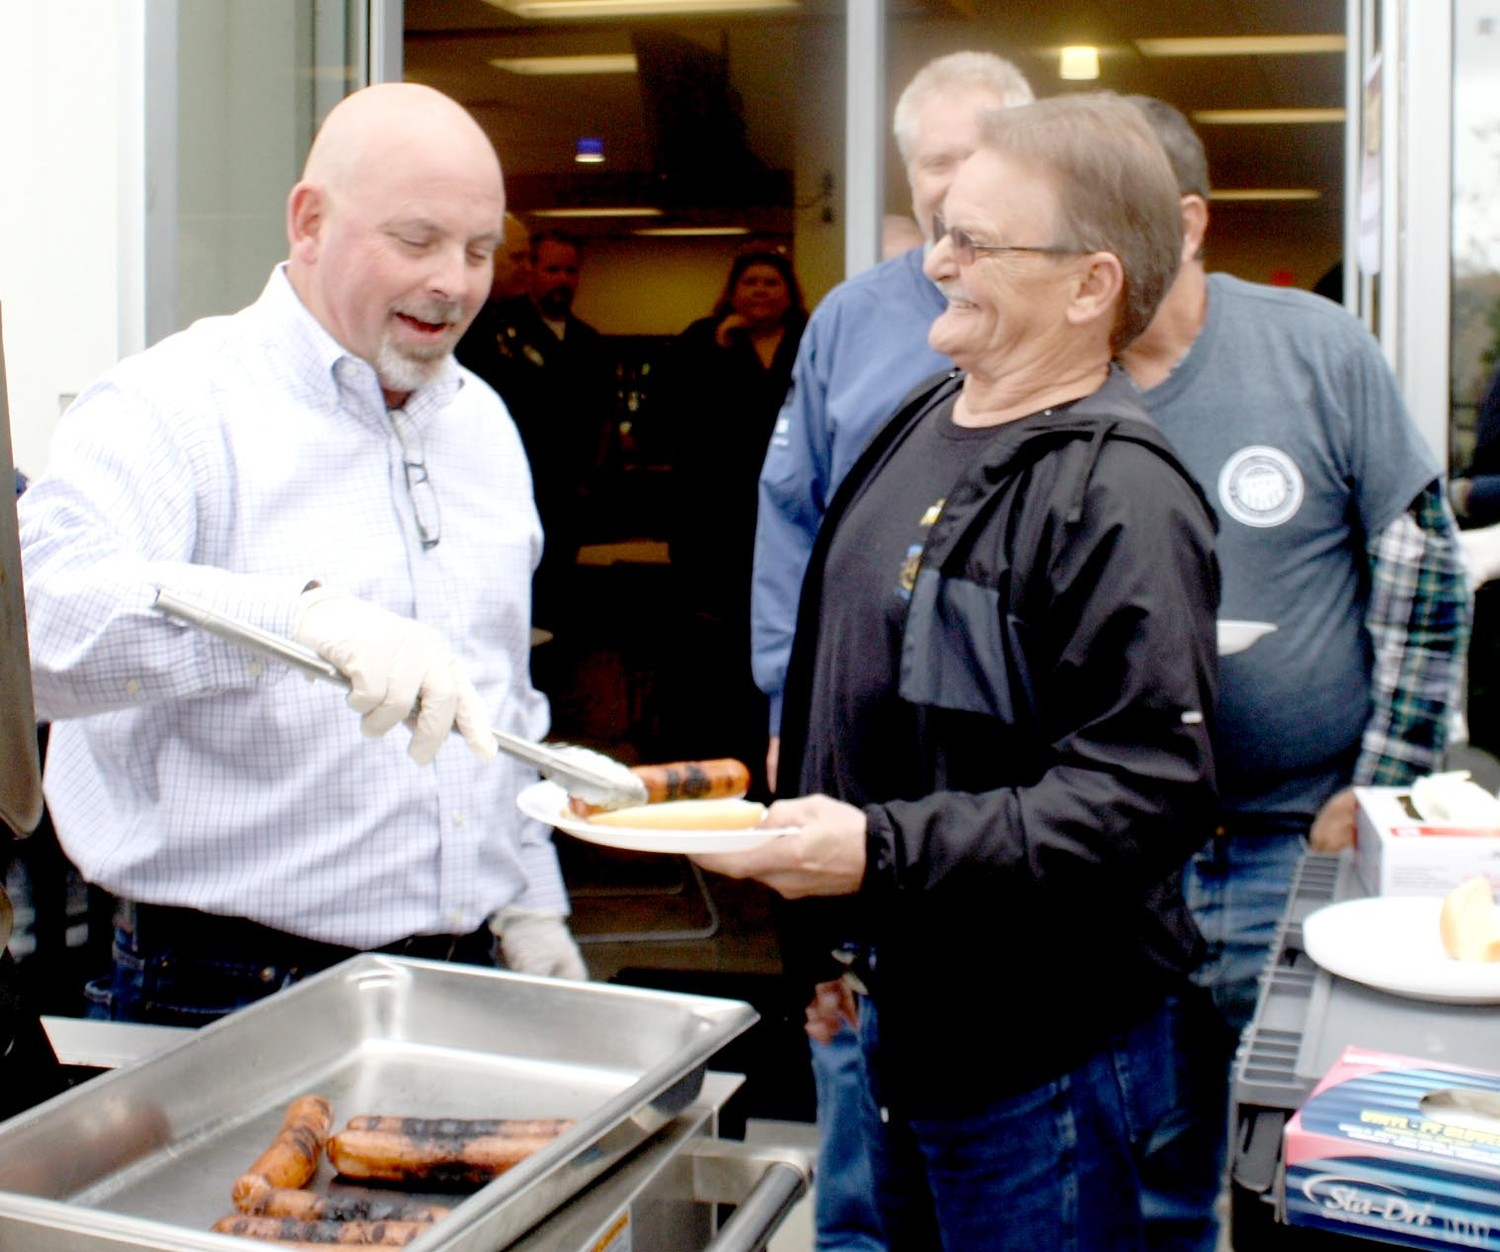 WHIRLPOOL CLEVELAND employee and veteran Gordon Heughan, right center, shares a laugh with Plant Manager Dicky Walters on Thursday. The Cleveland facility treated its 51 veterans to a luncheon cookout and a 21-gun salute by the Bradley County Funeral Honor Guard.